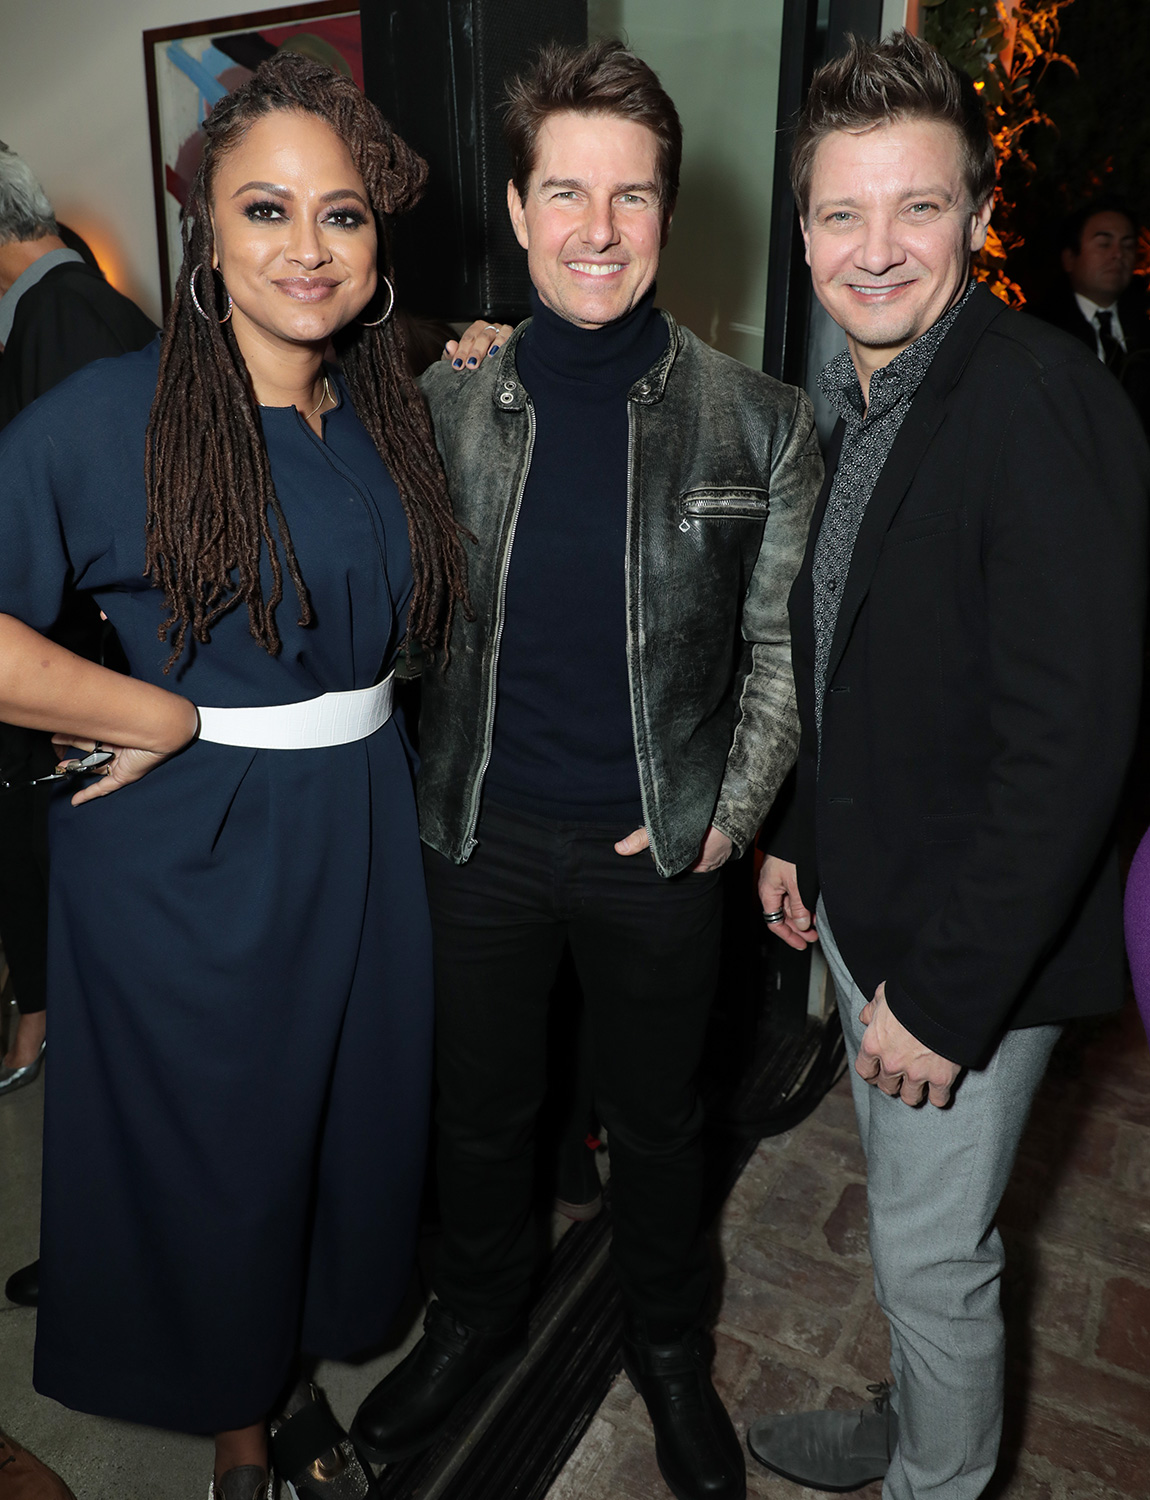 Ava DuVernay, Tom Cruise and Jeremy Renner attend the CAA Pre-Oscar Party, at San Vicente Bungalows in West Hollywood on February 7, 2020.